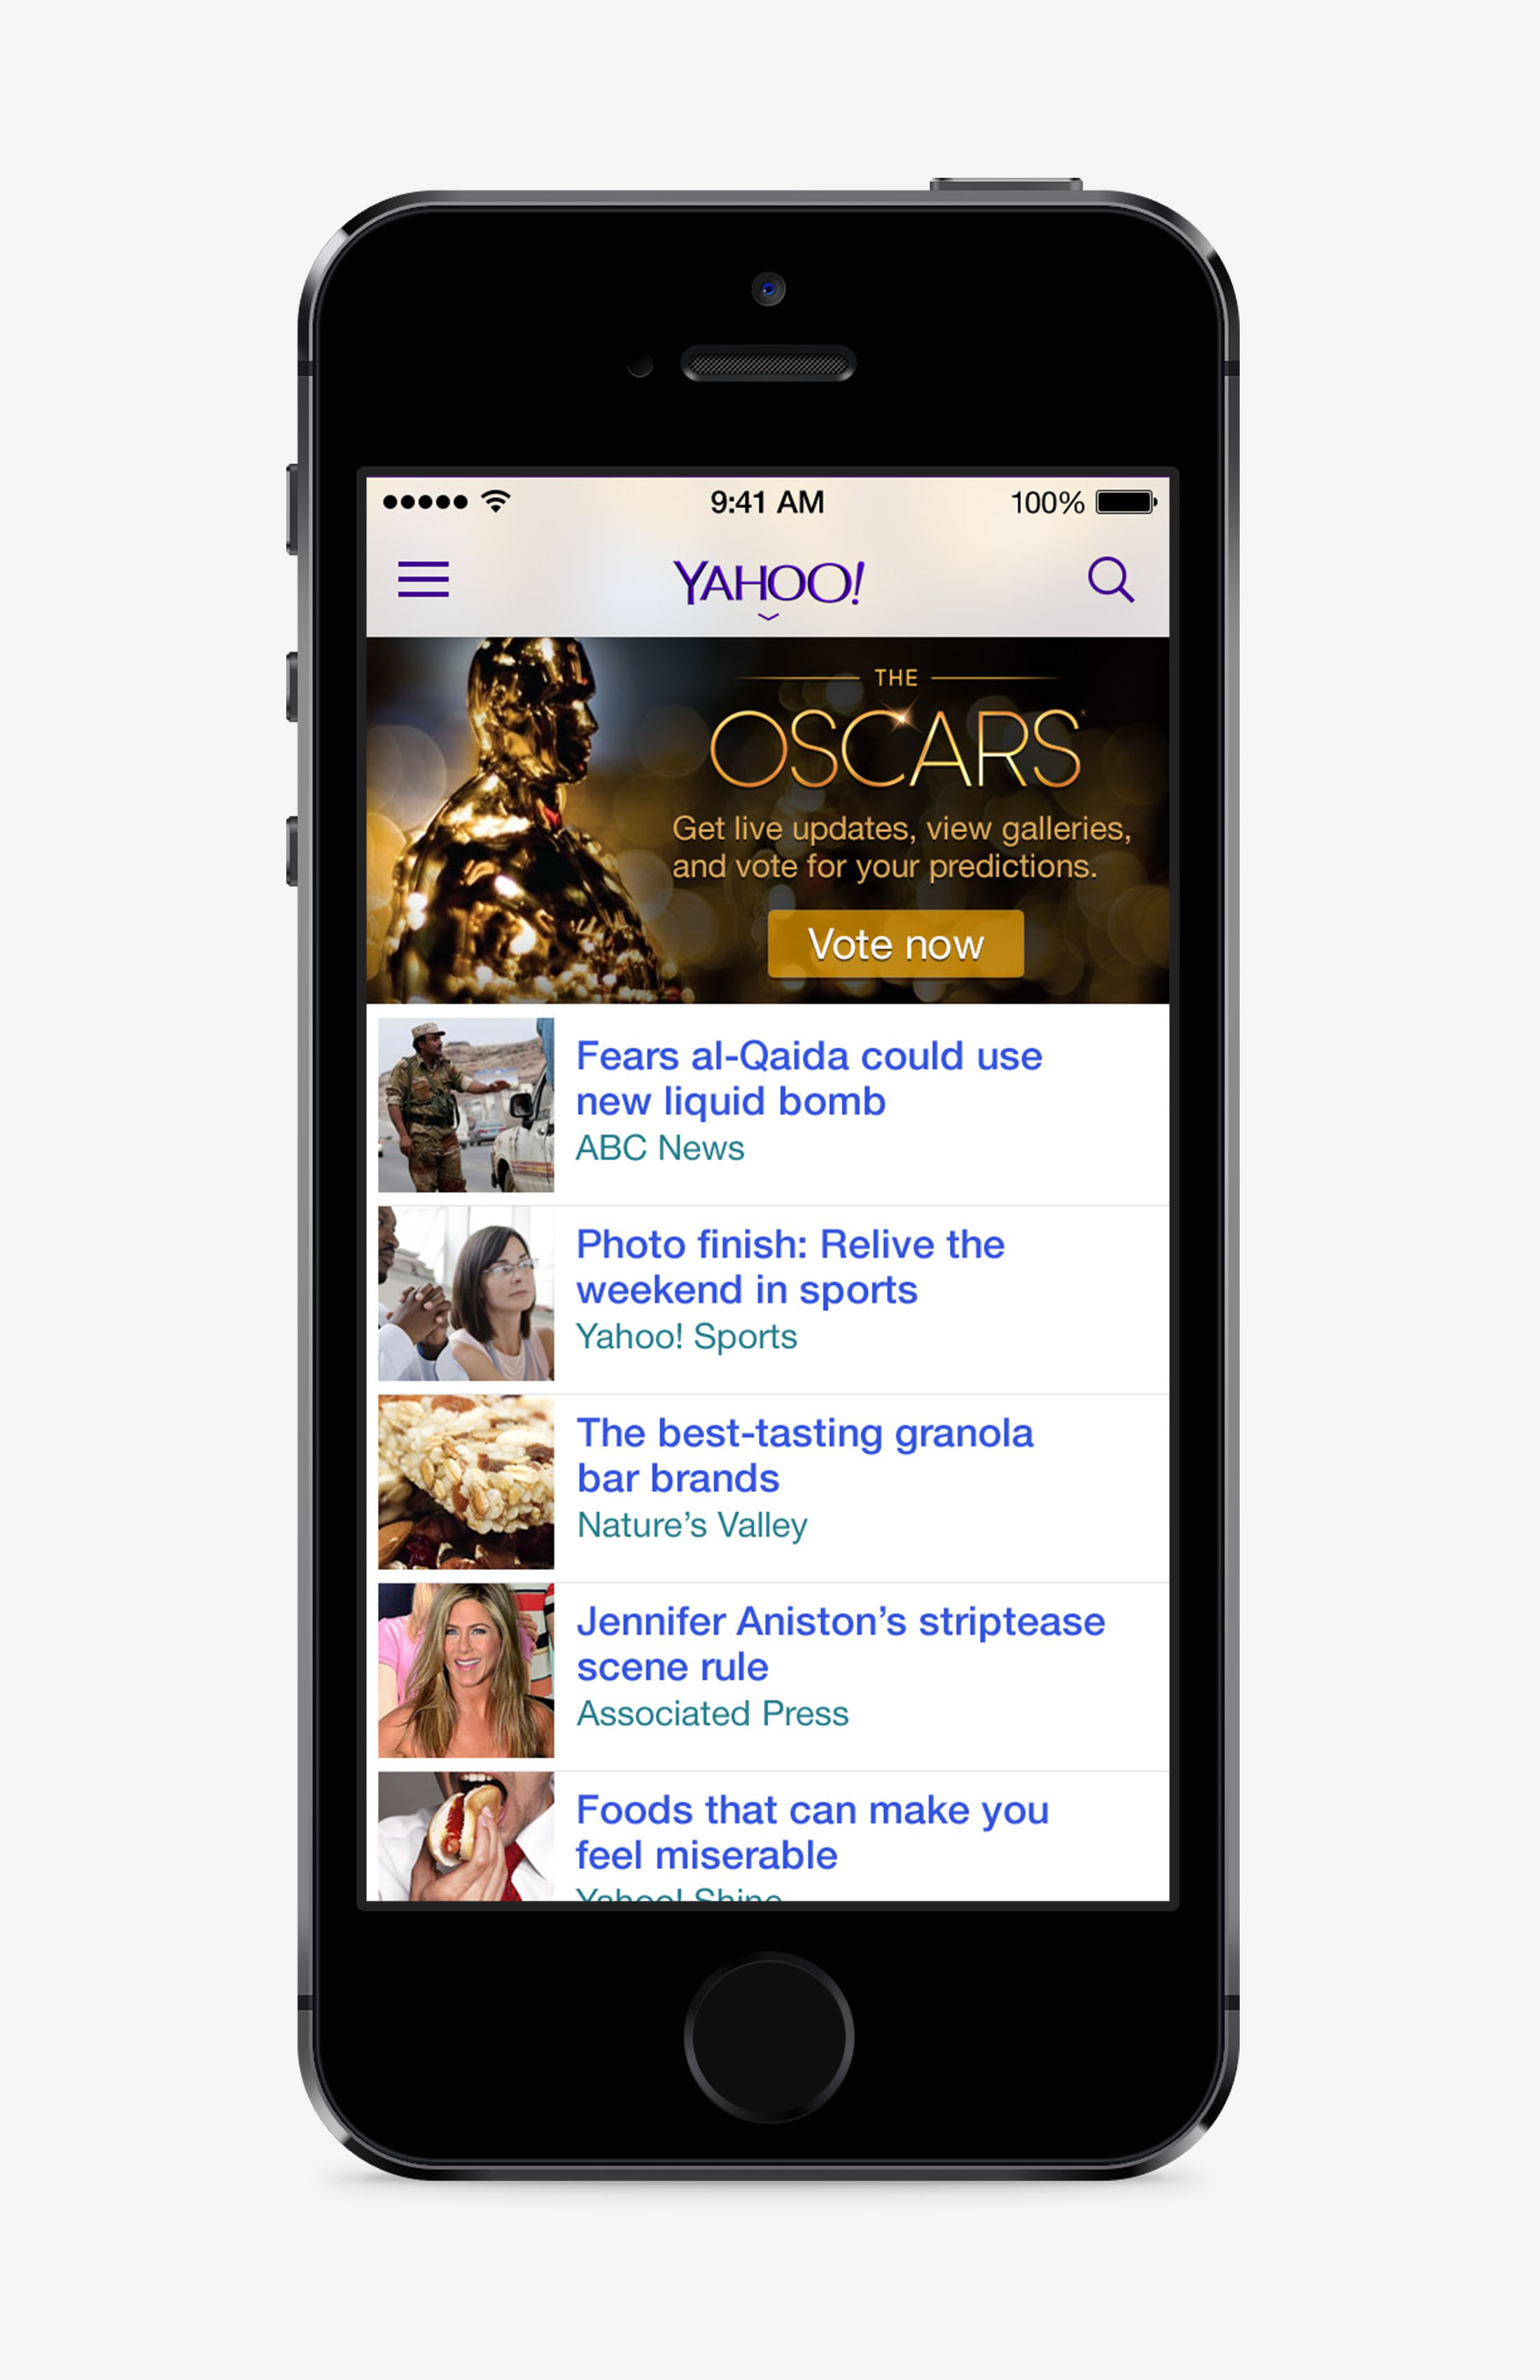 Yahoo Oscars Today Module